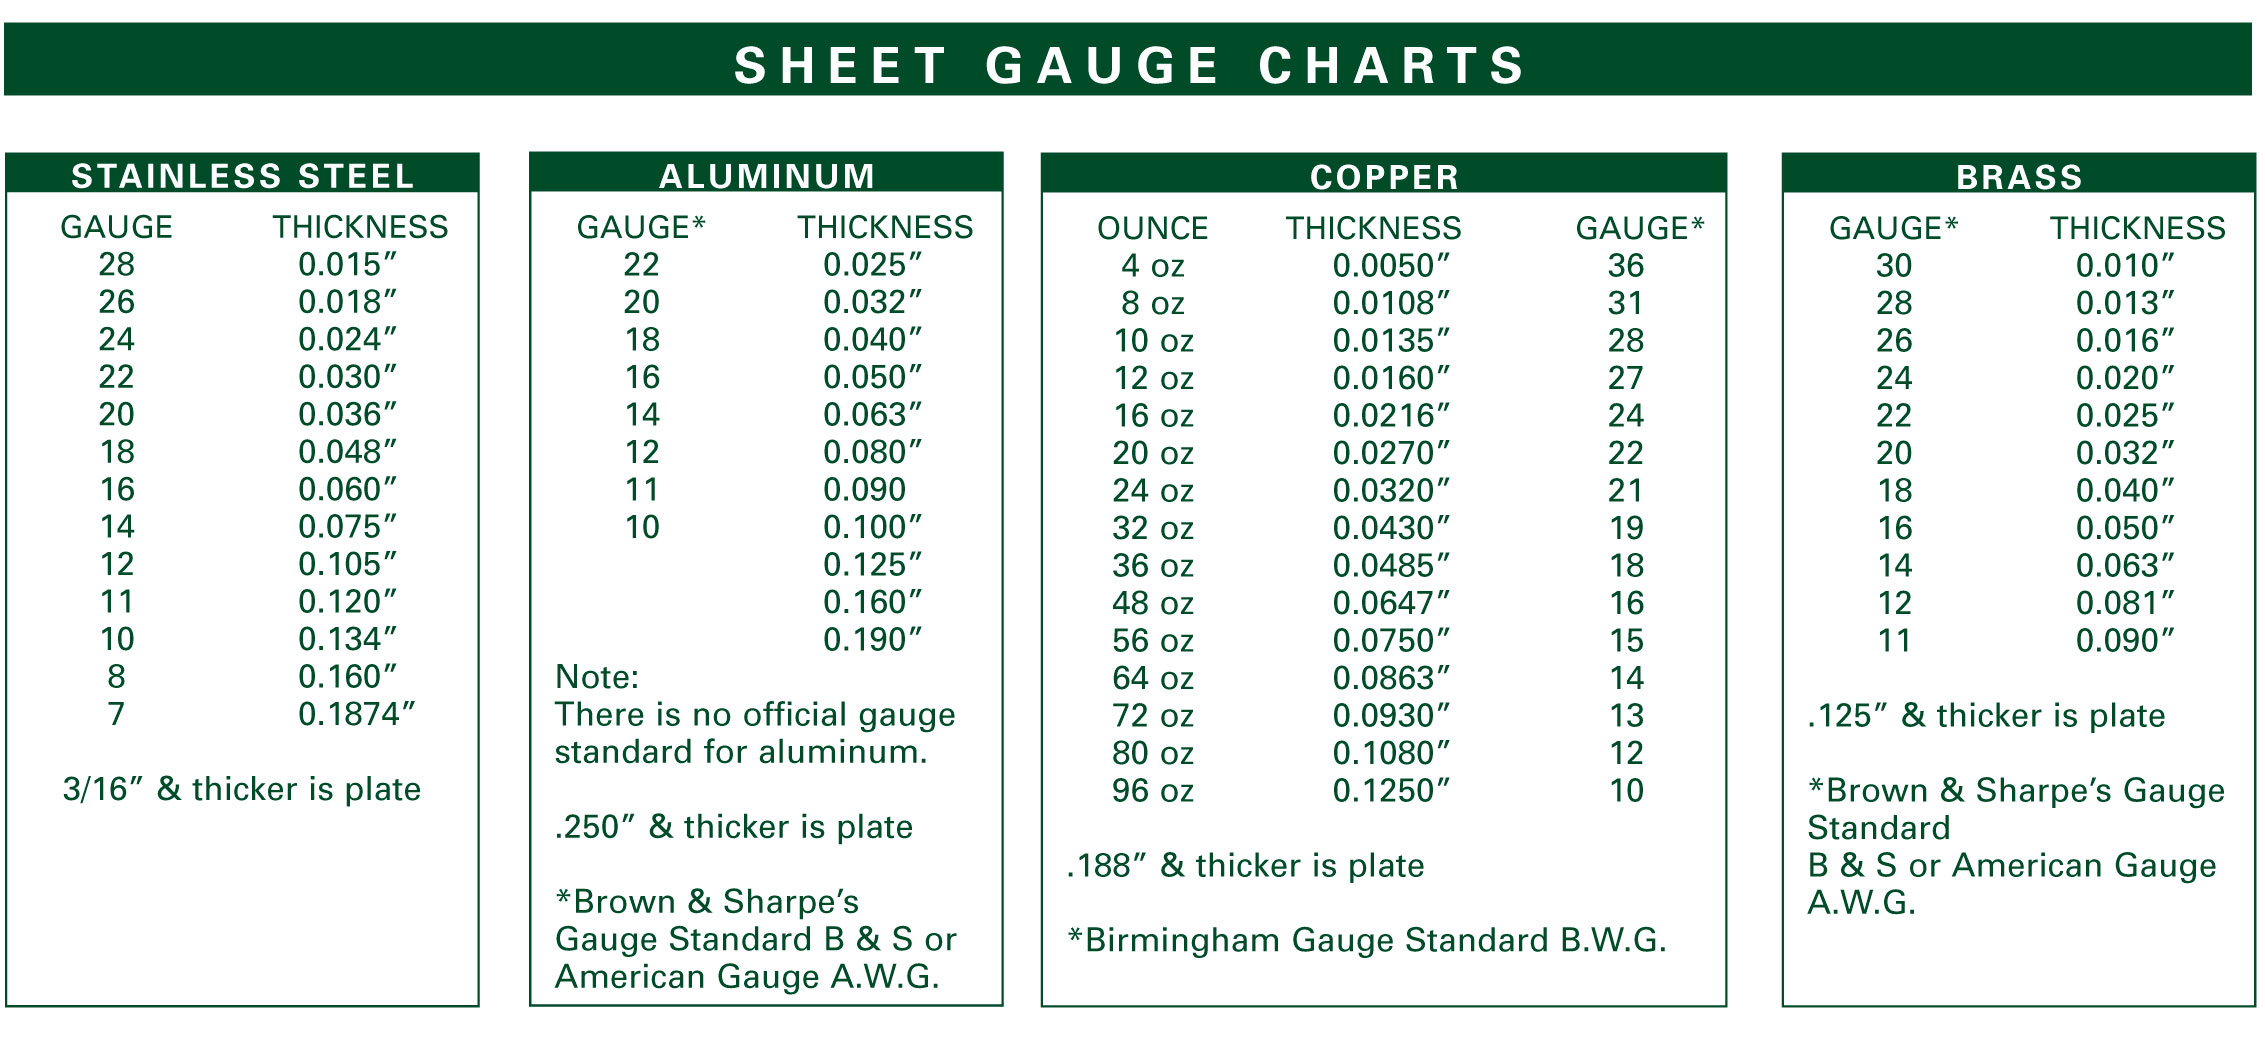 Sheet gauge seatledavidjoel sheet gauge greentooth